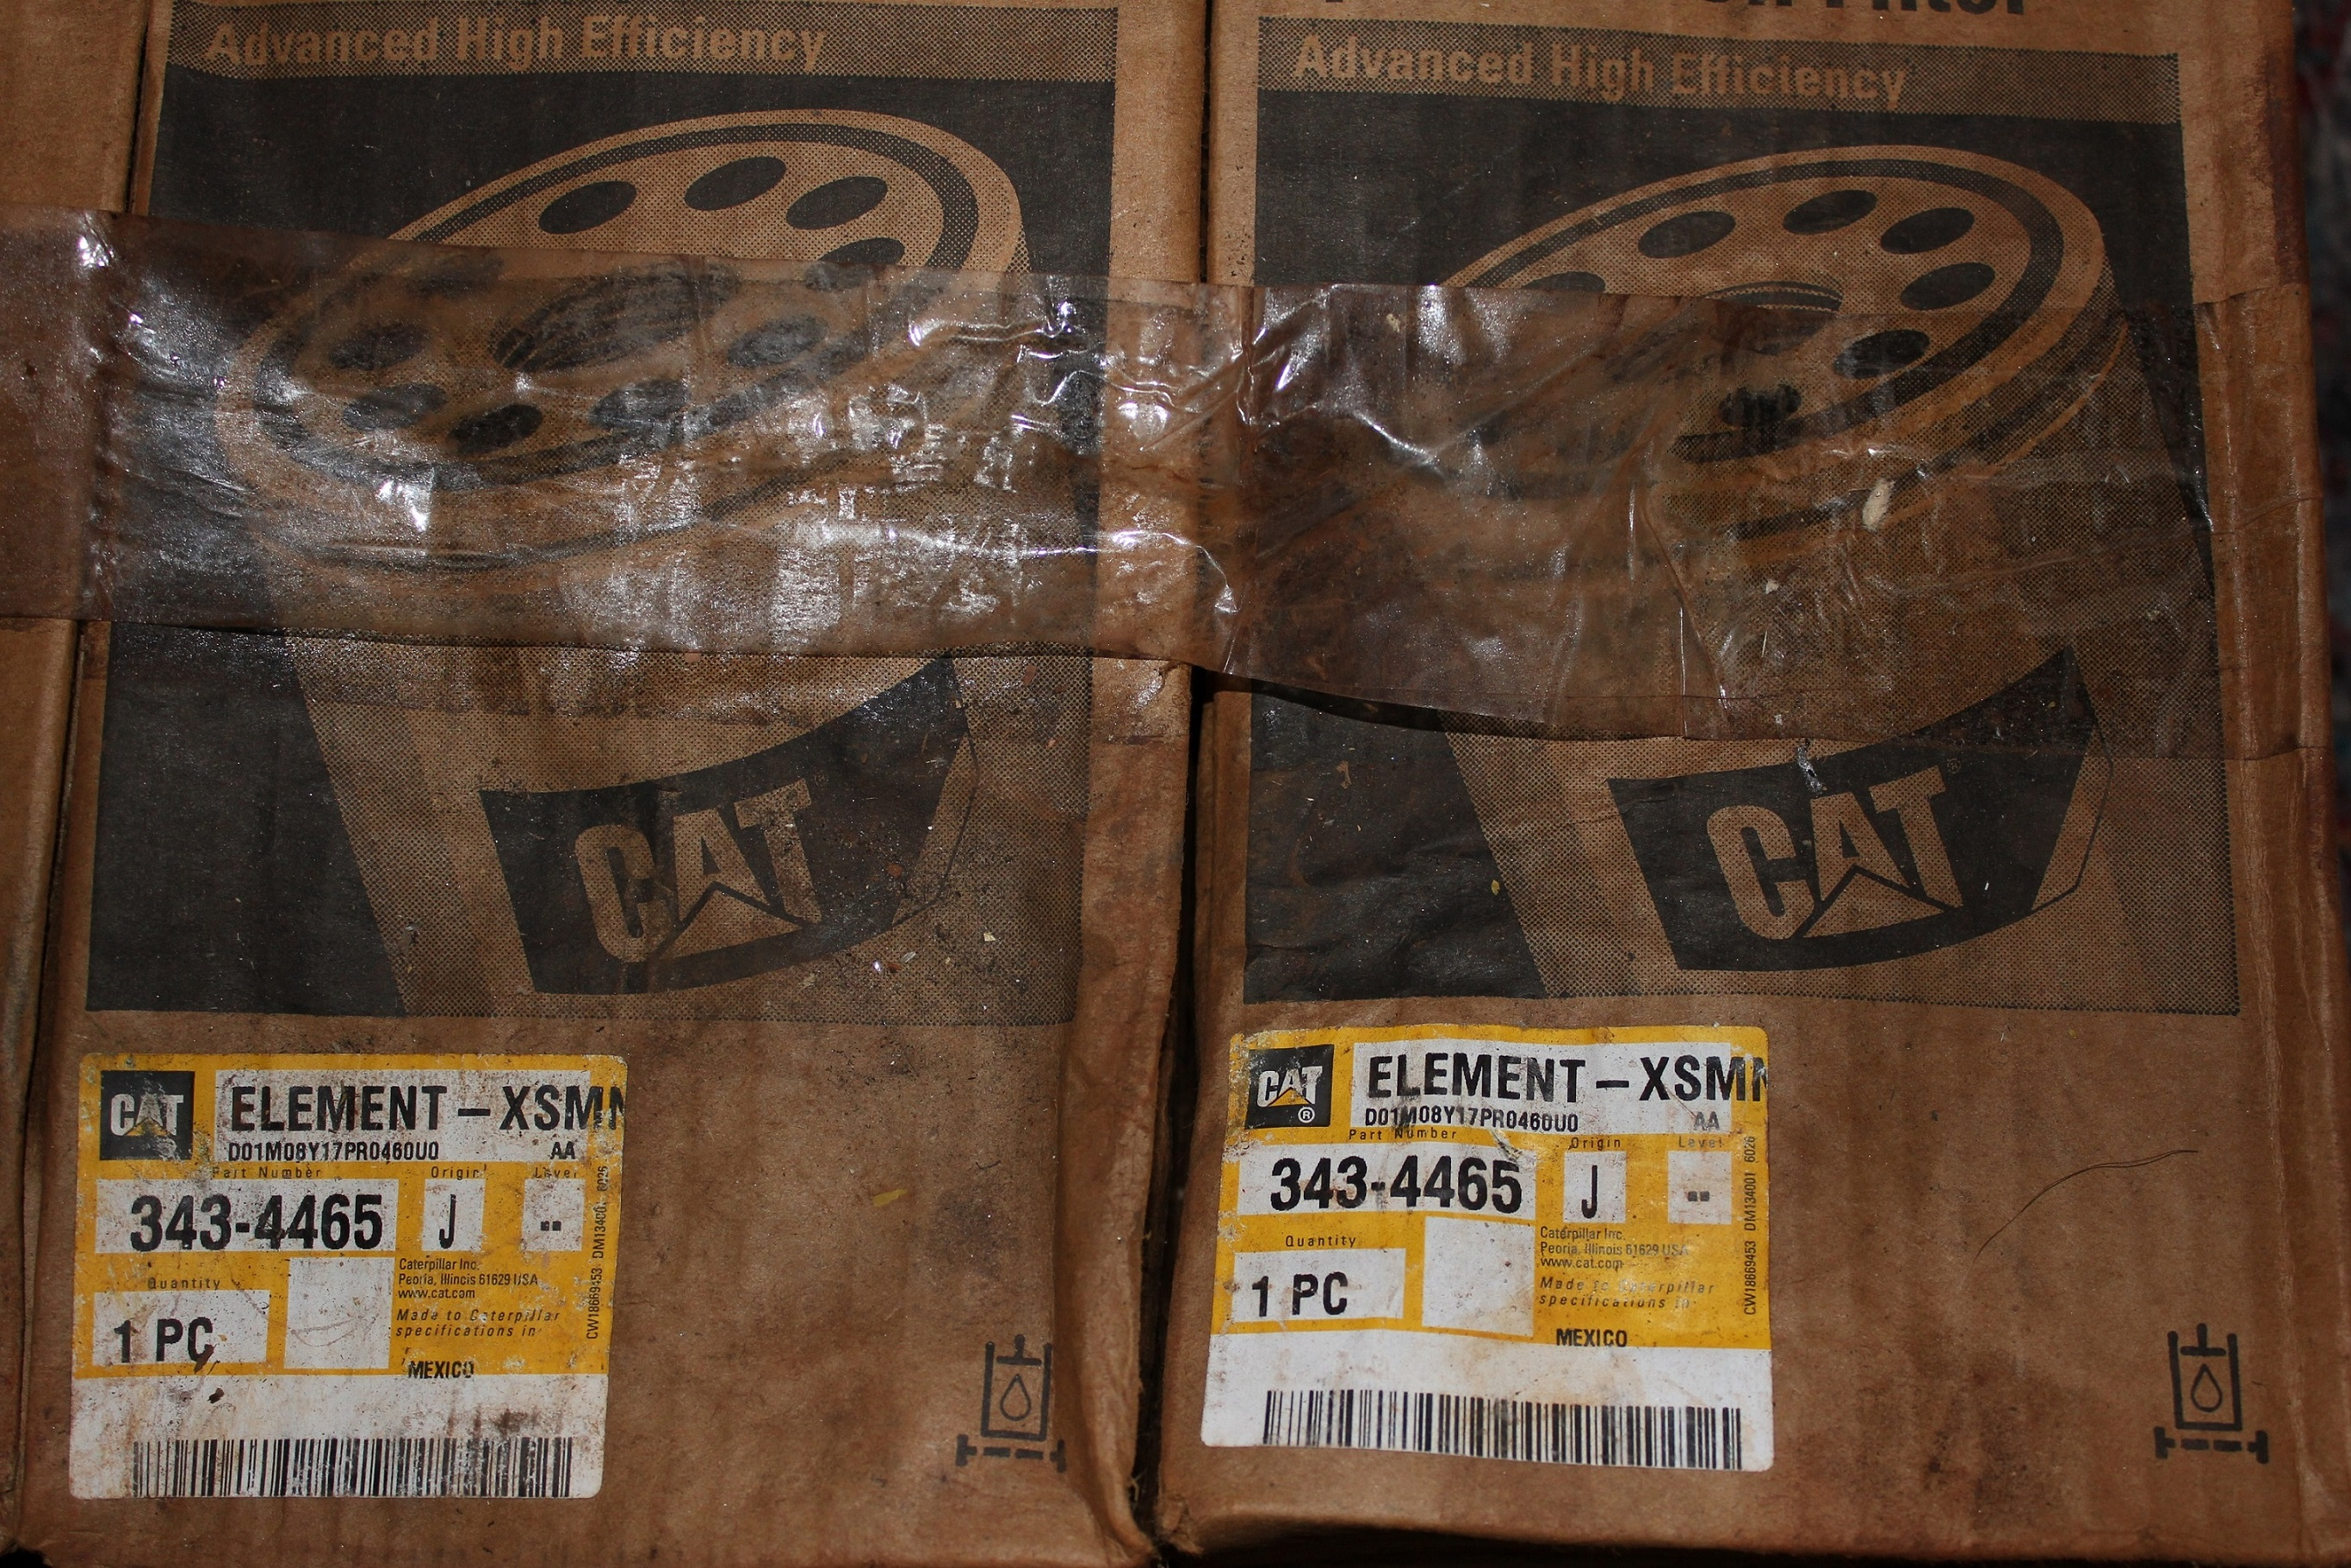 Caterpillar Hydraulic and Transmission Oil Filter 3434465